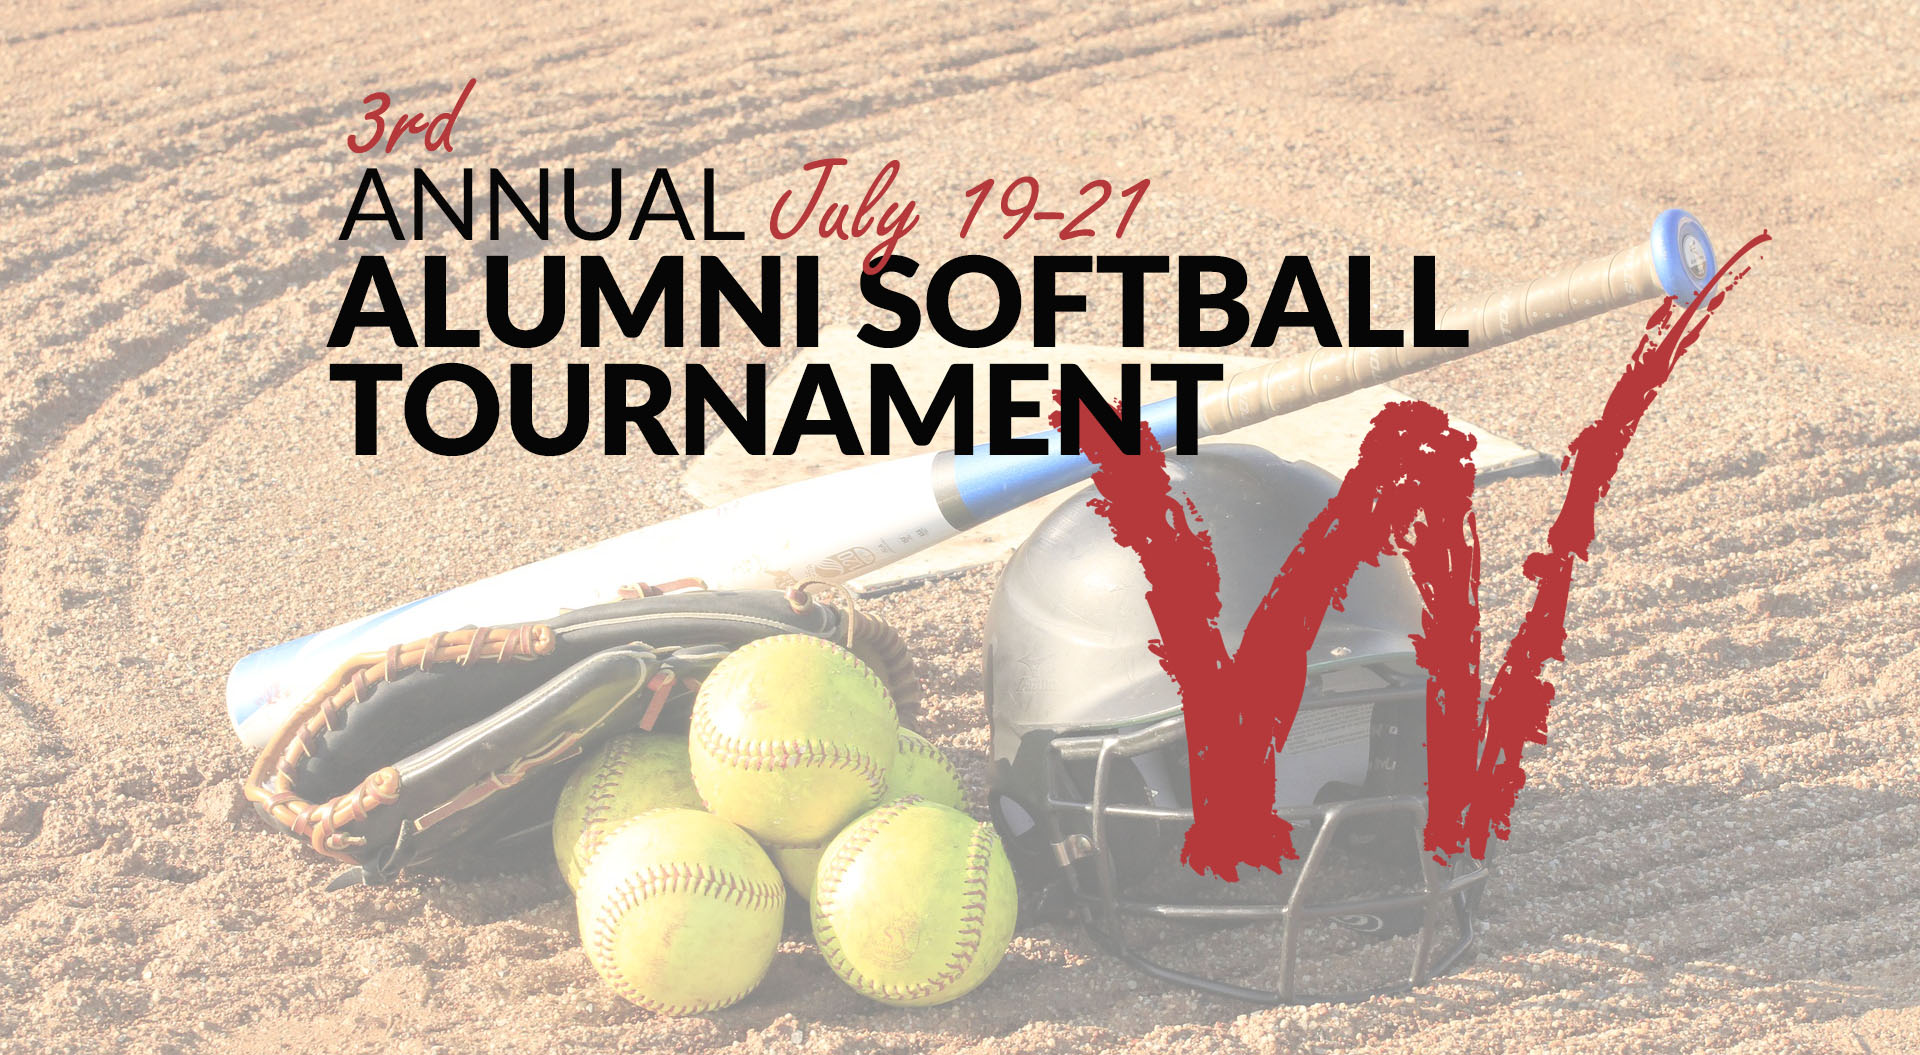 3rd Annual Alumni Softball Tournament July 19-21